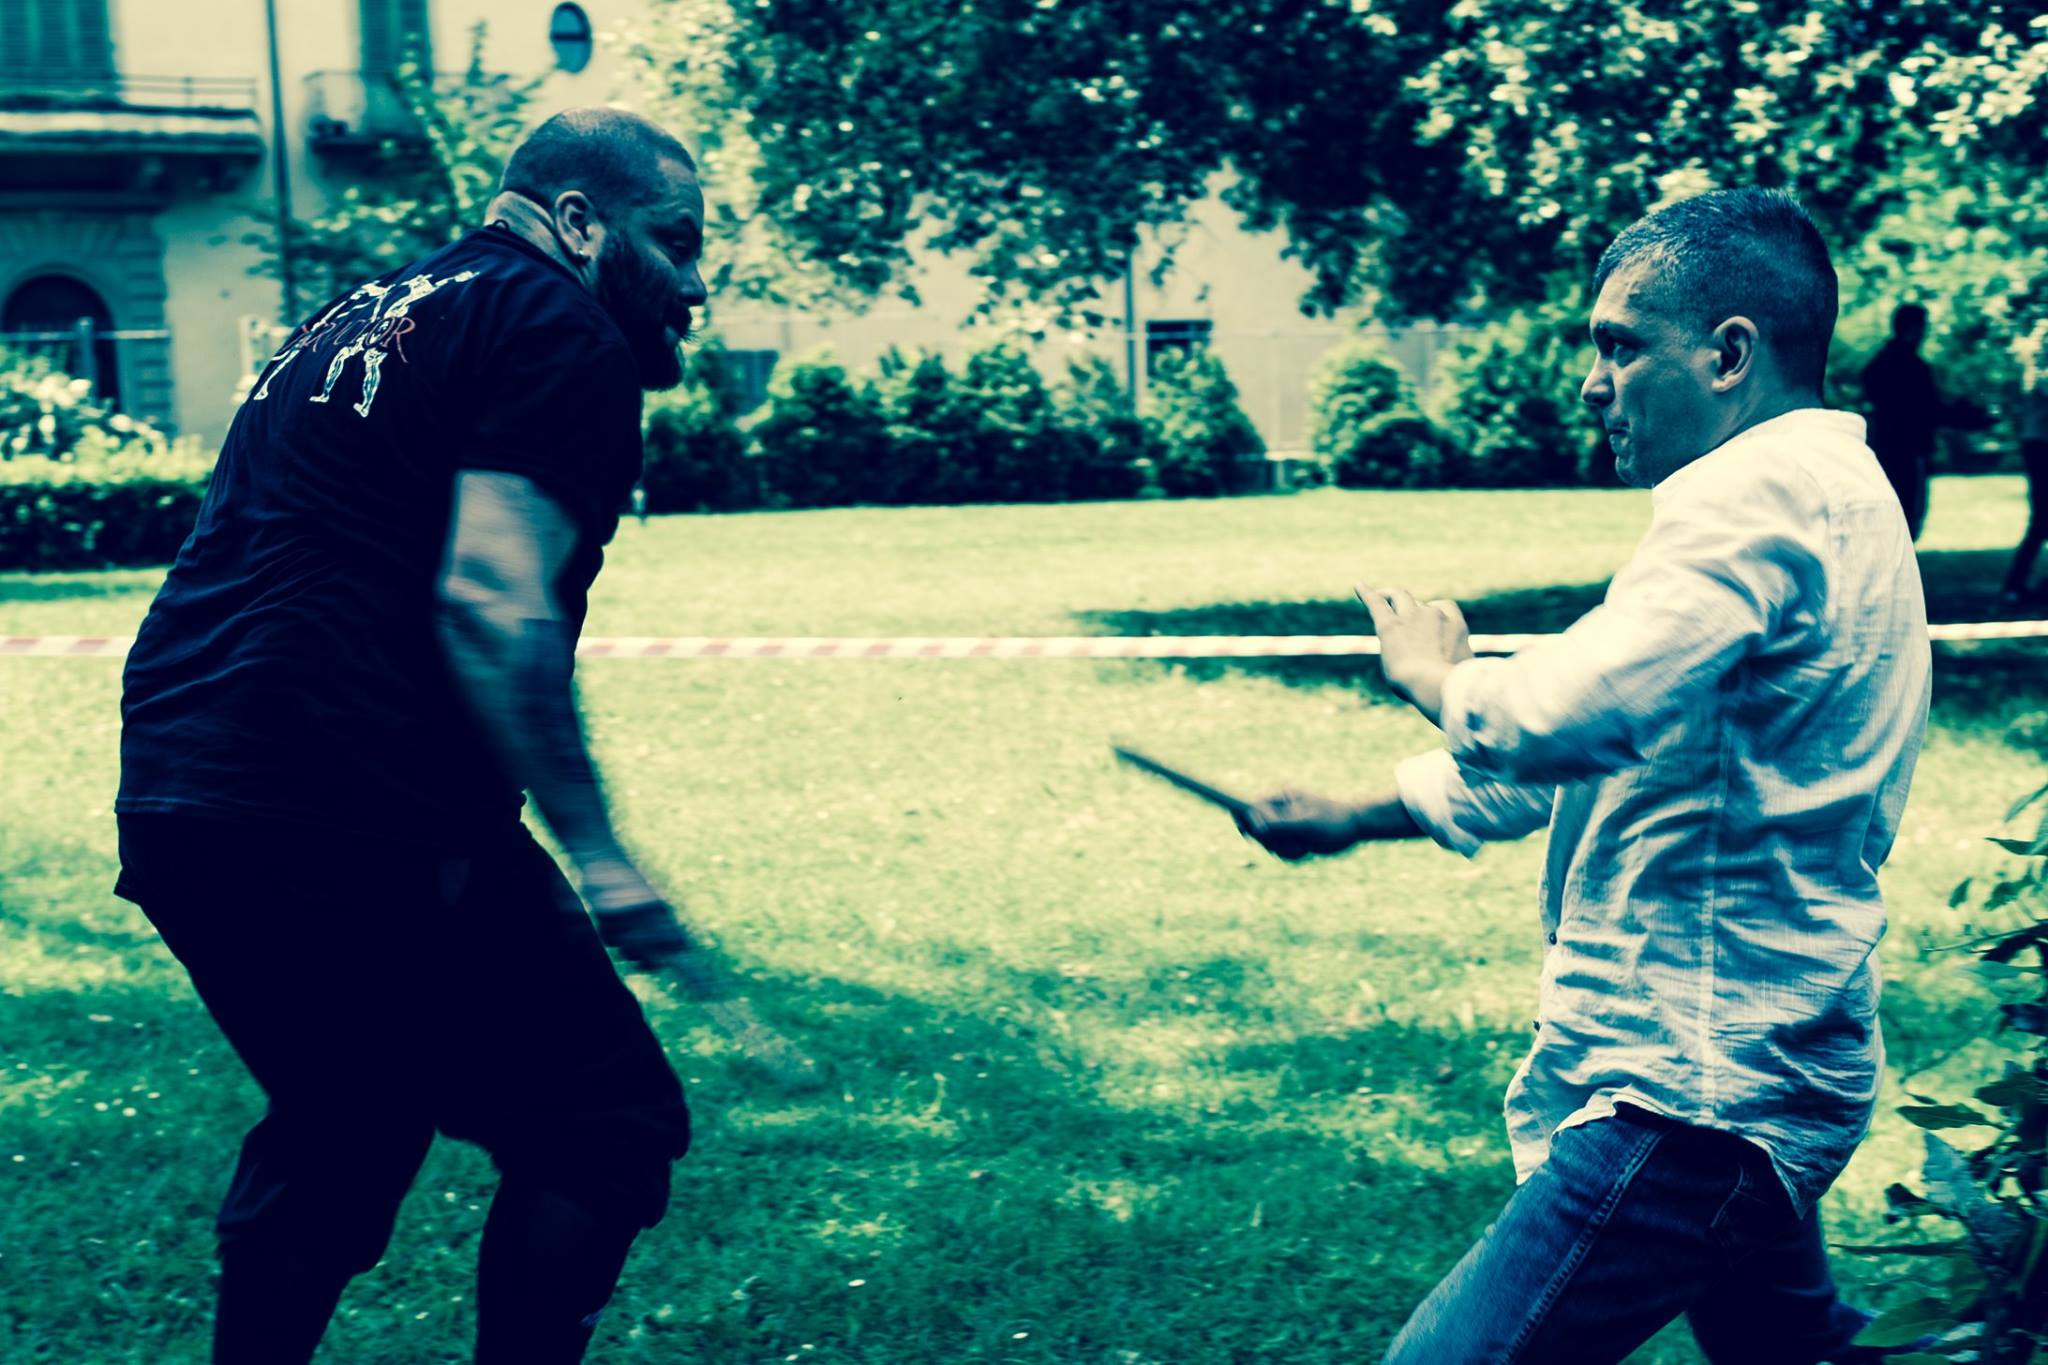 The point of sparring